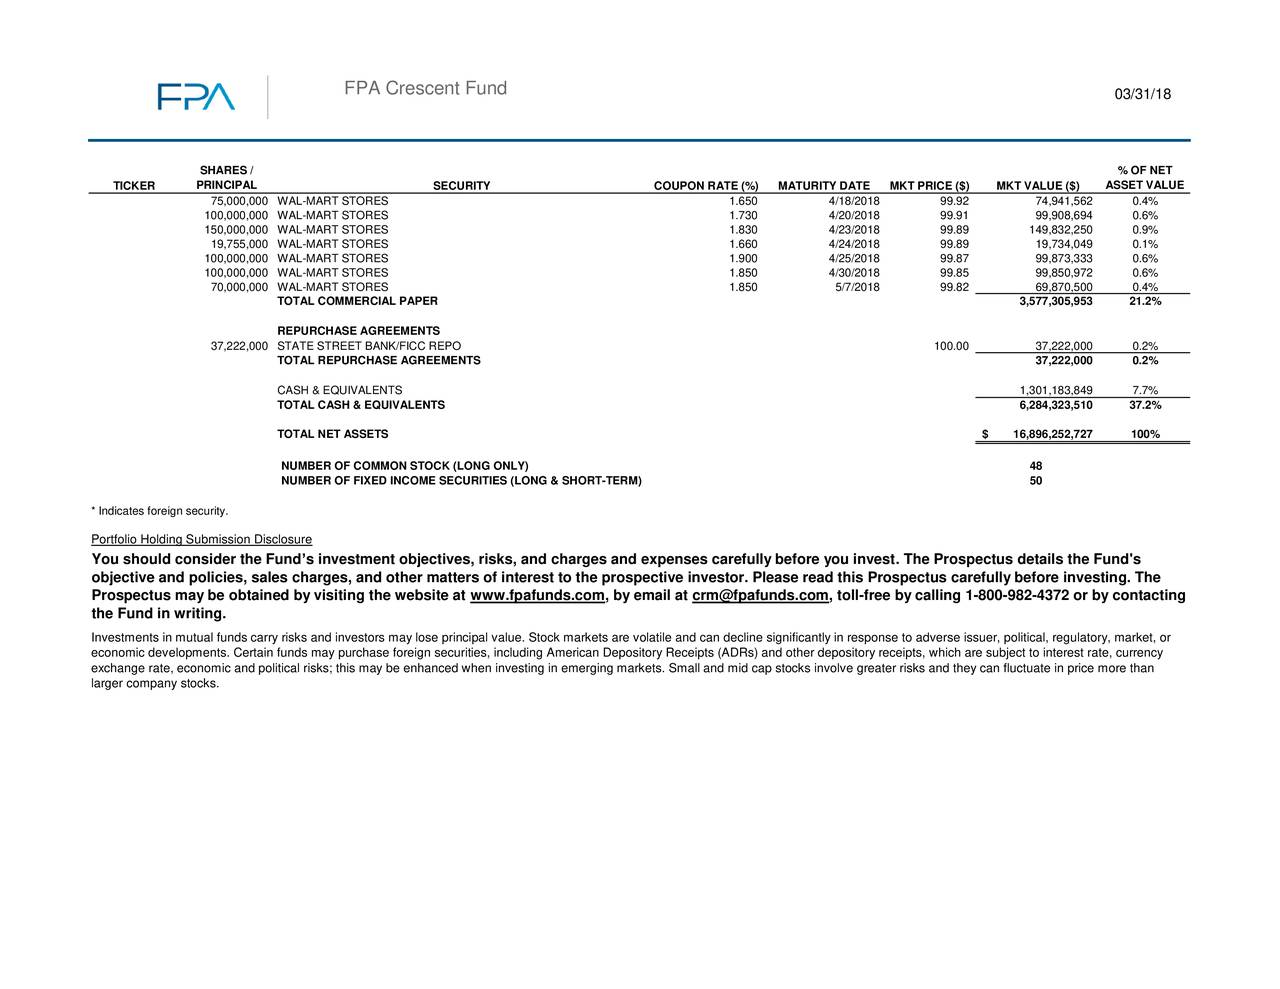 fpa crescent fund q1 2018 commentary